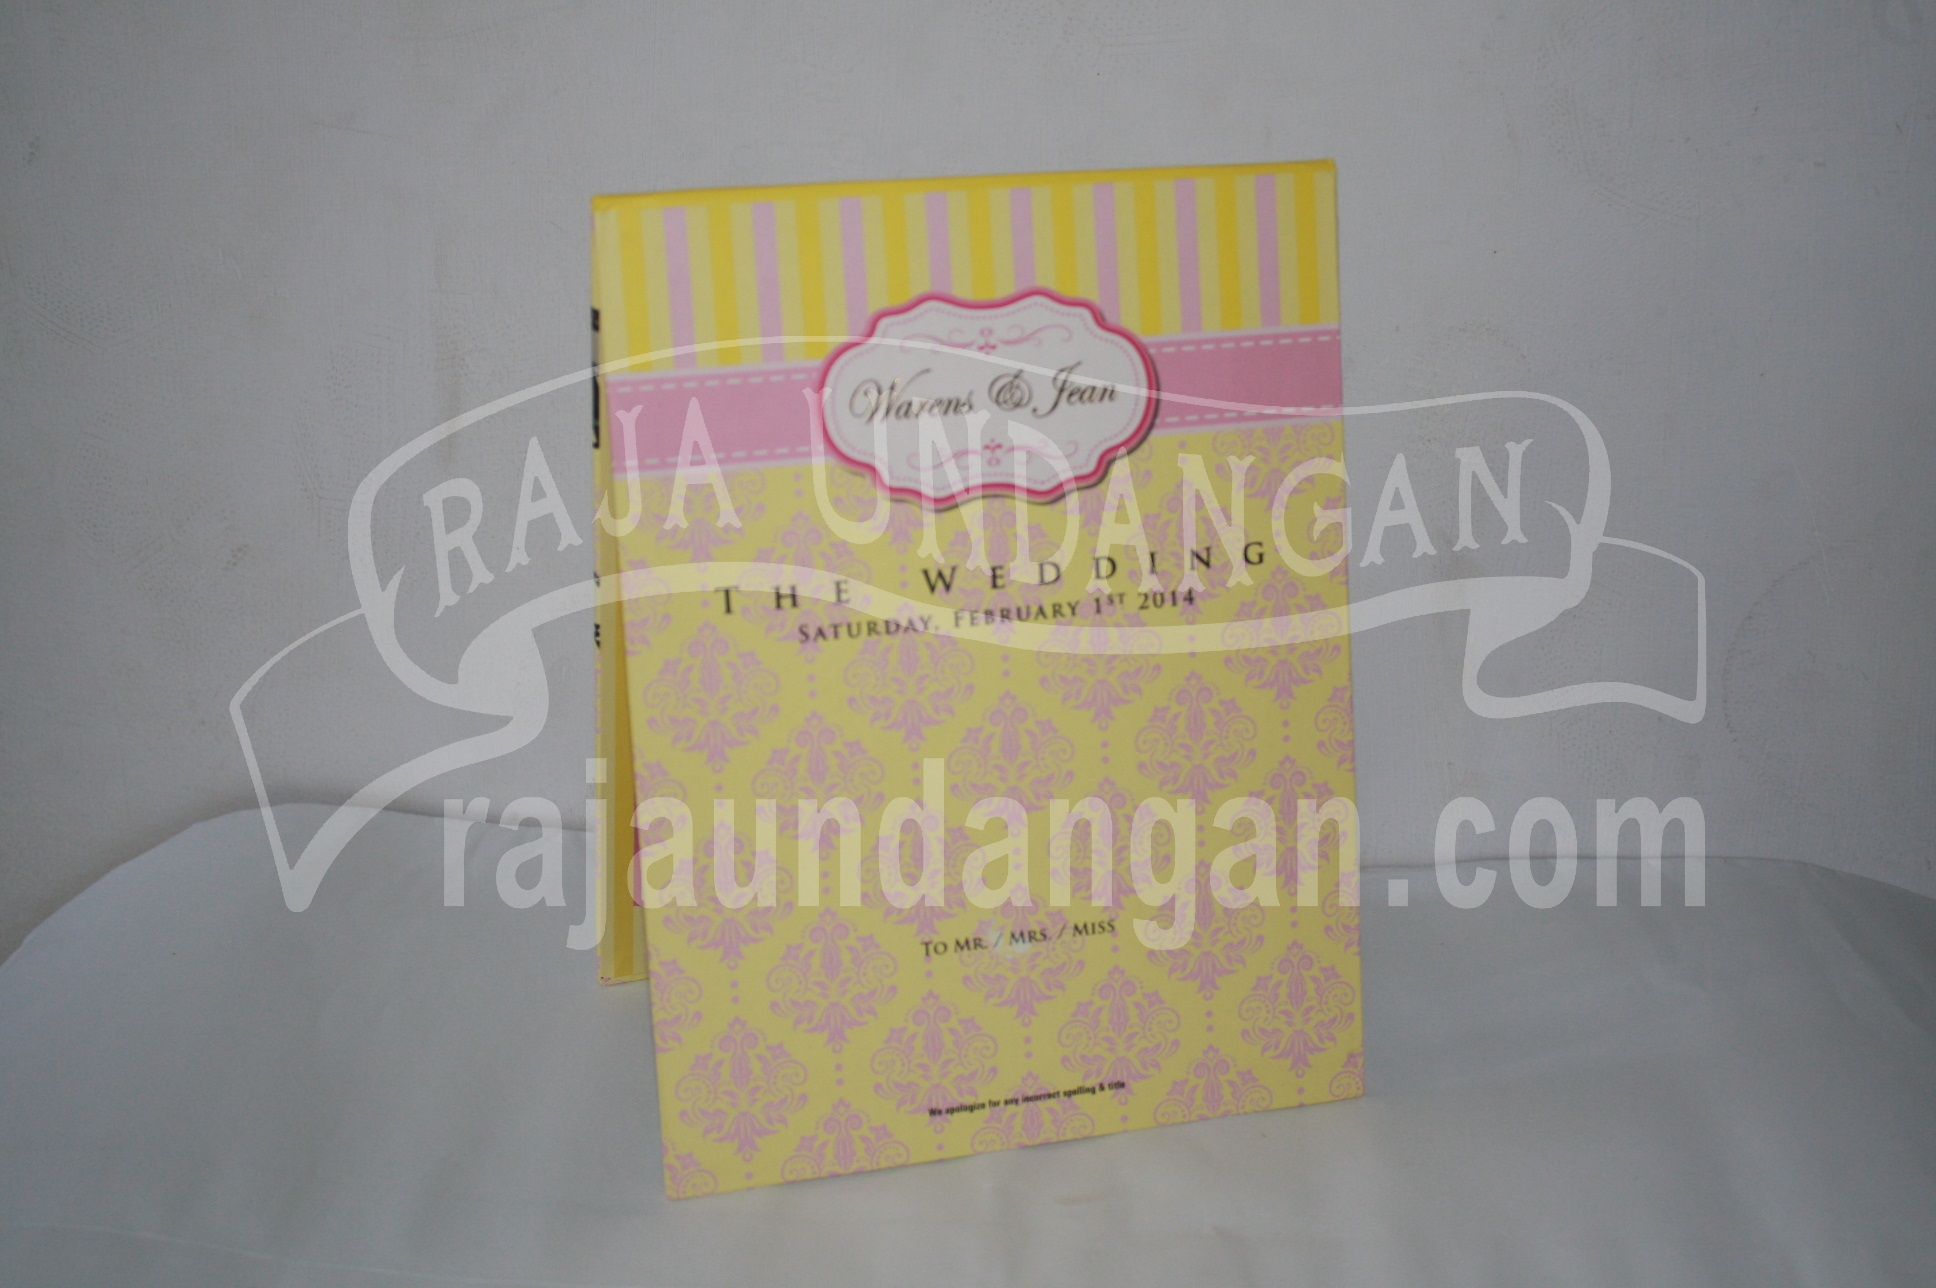 Undangan Pernikahan Hardcover Pop Up Warens dan Jean EDC 50 - Percetakan Wedding Invitations Elegan di Pakal